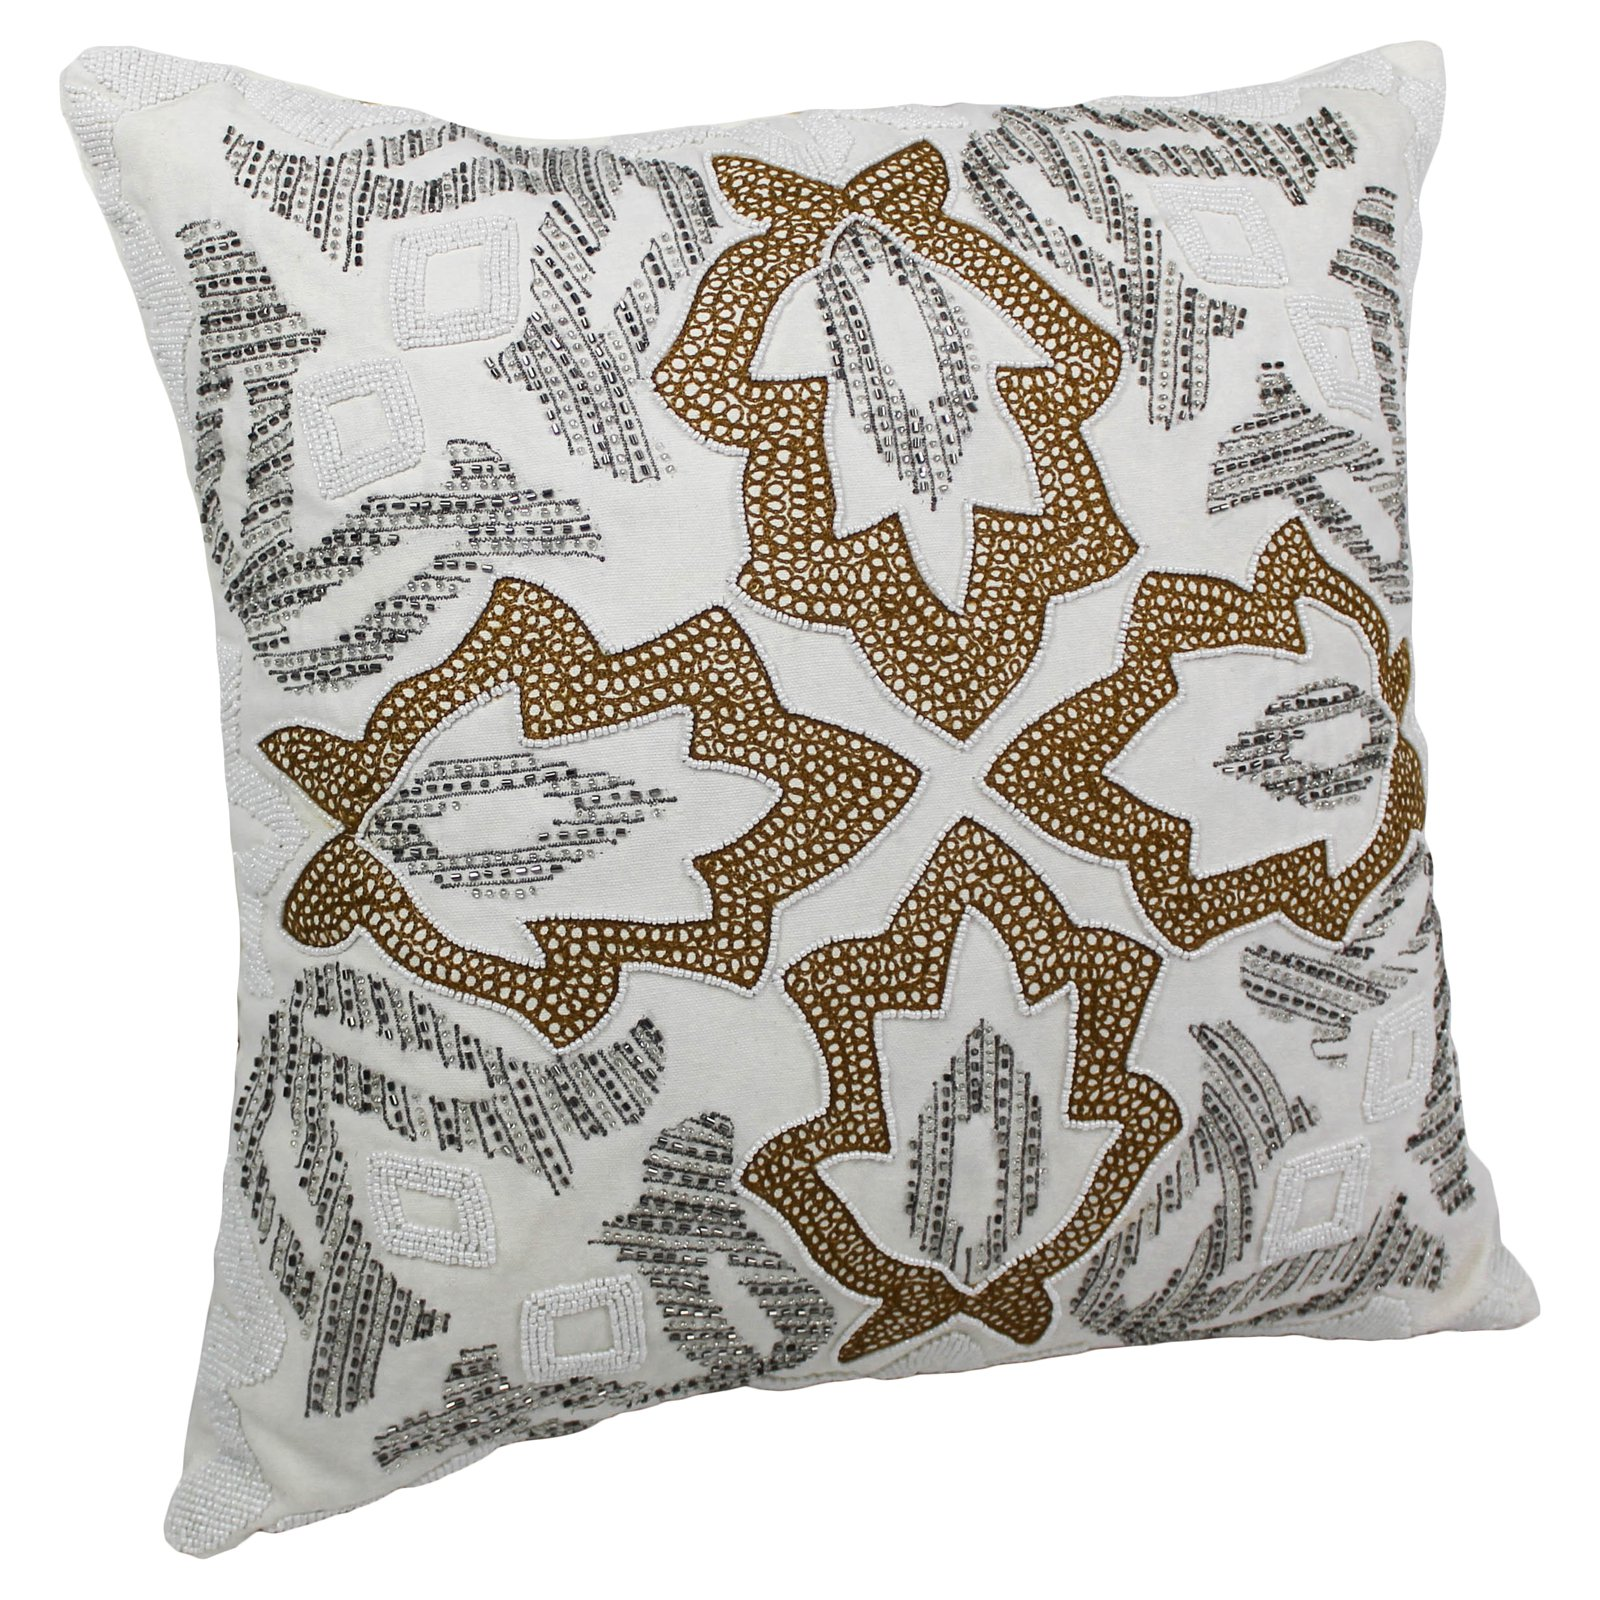 Blazing Needles 20 x 20 in. Symmetrical Floral Beaded Throw Pillow